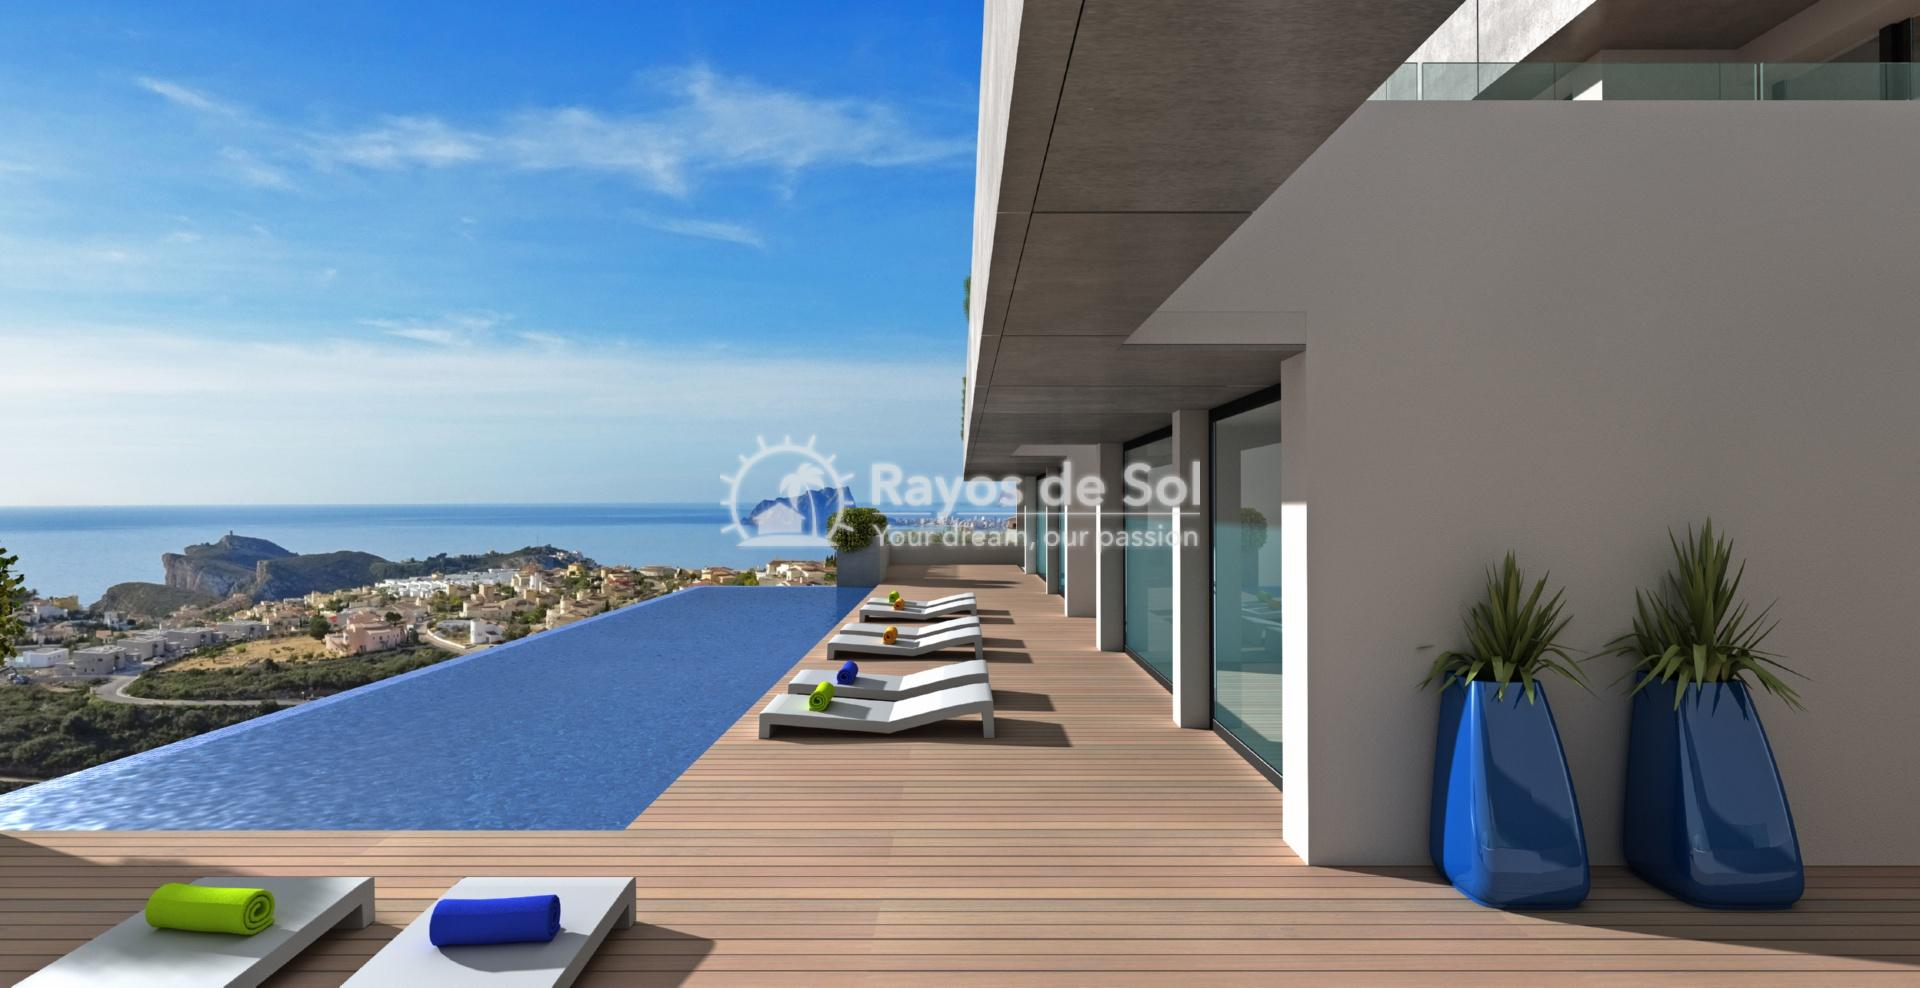 Exclusive apartement in Cumbre del Sol, Benitachell, Costa Blanca (BEVABI3-2) - 16